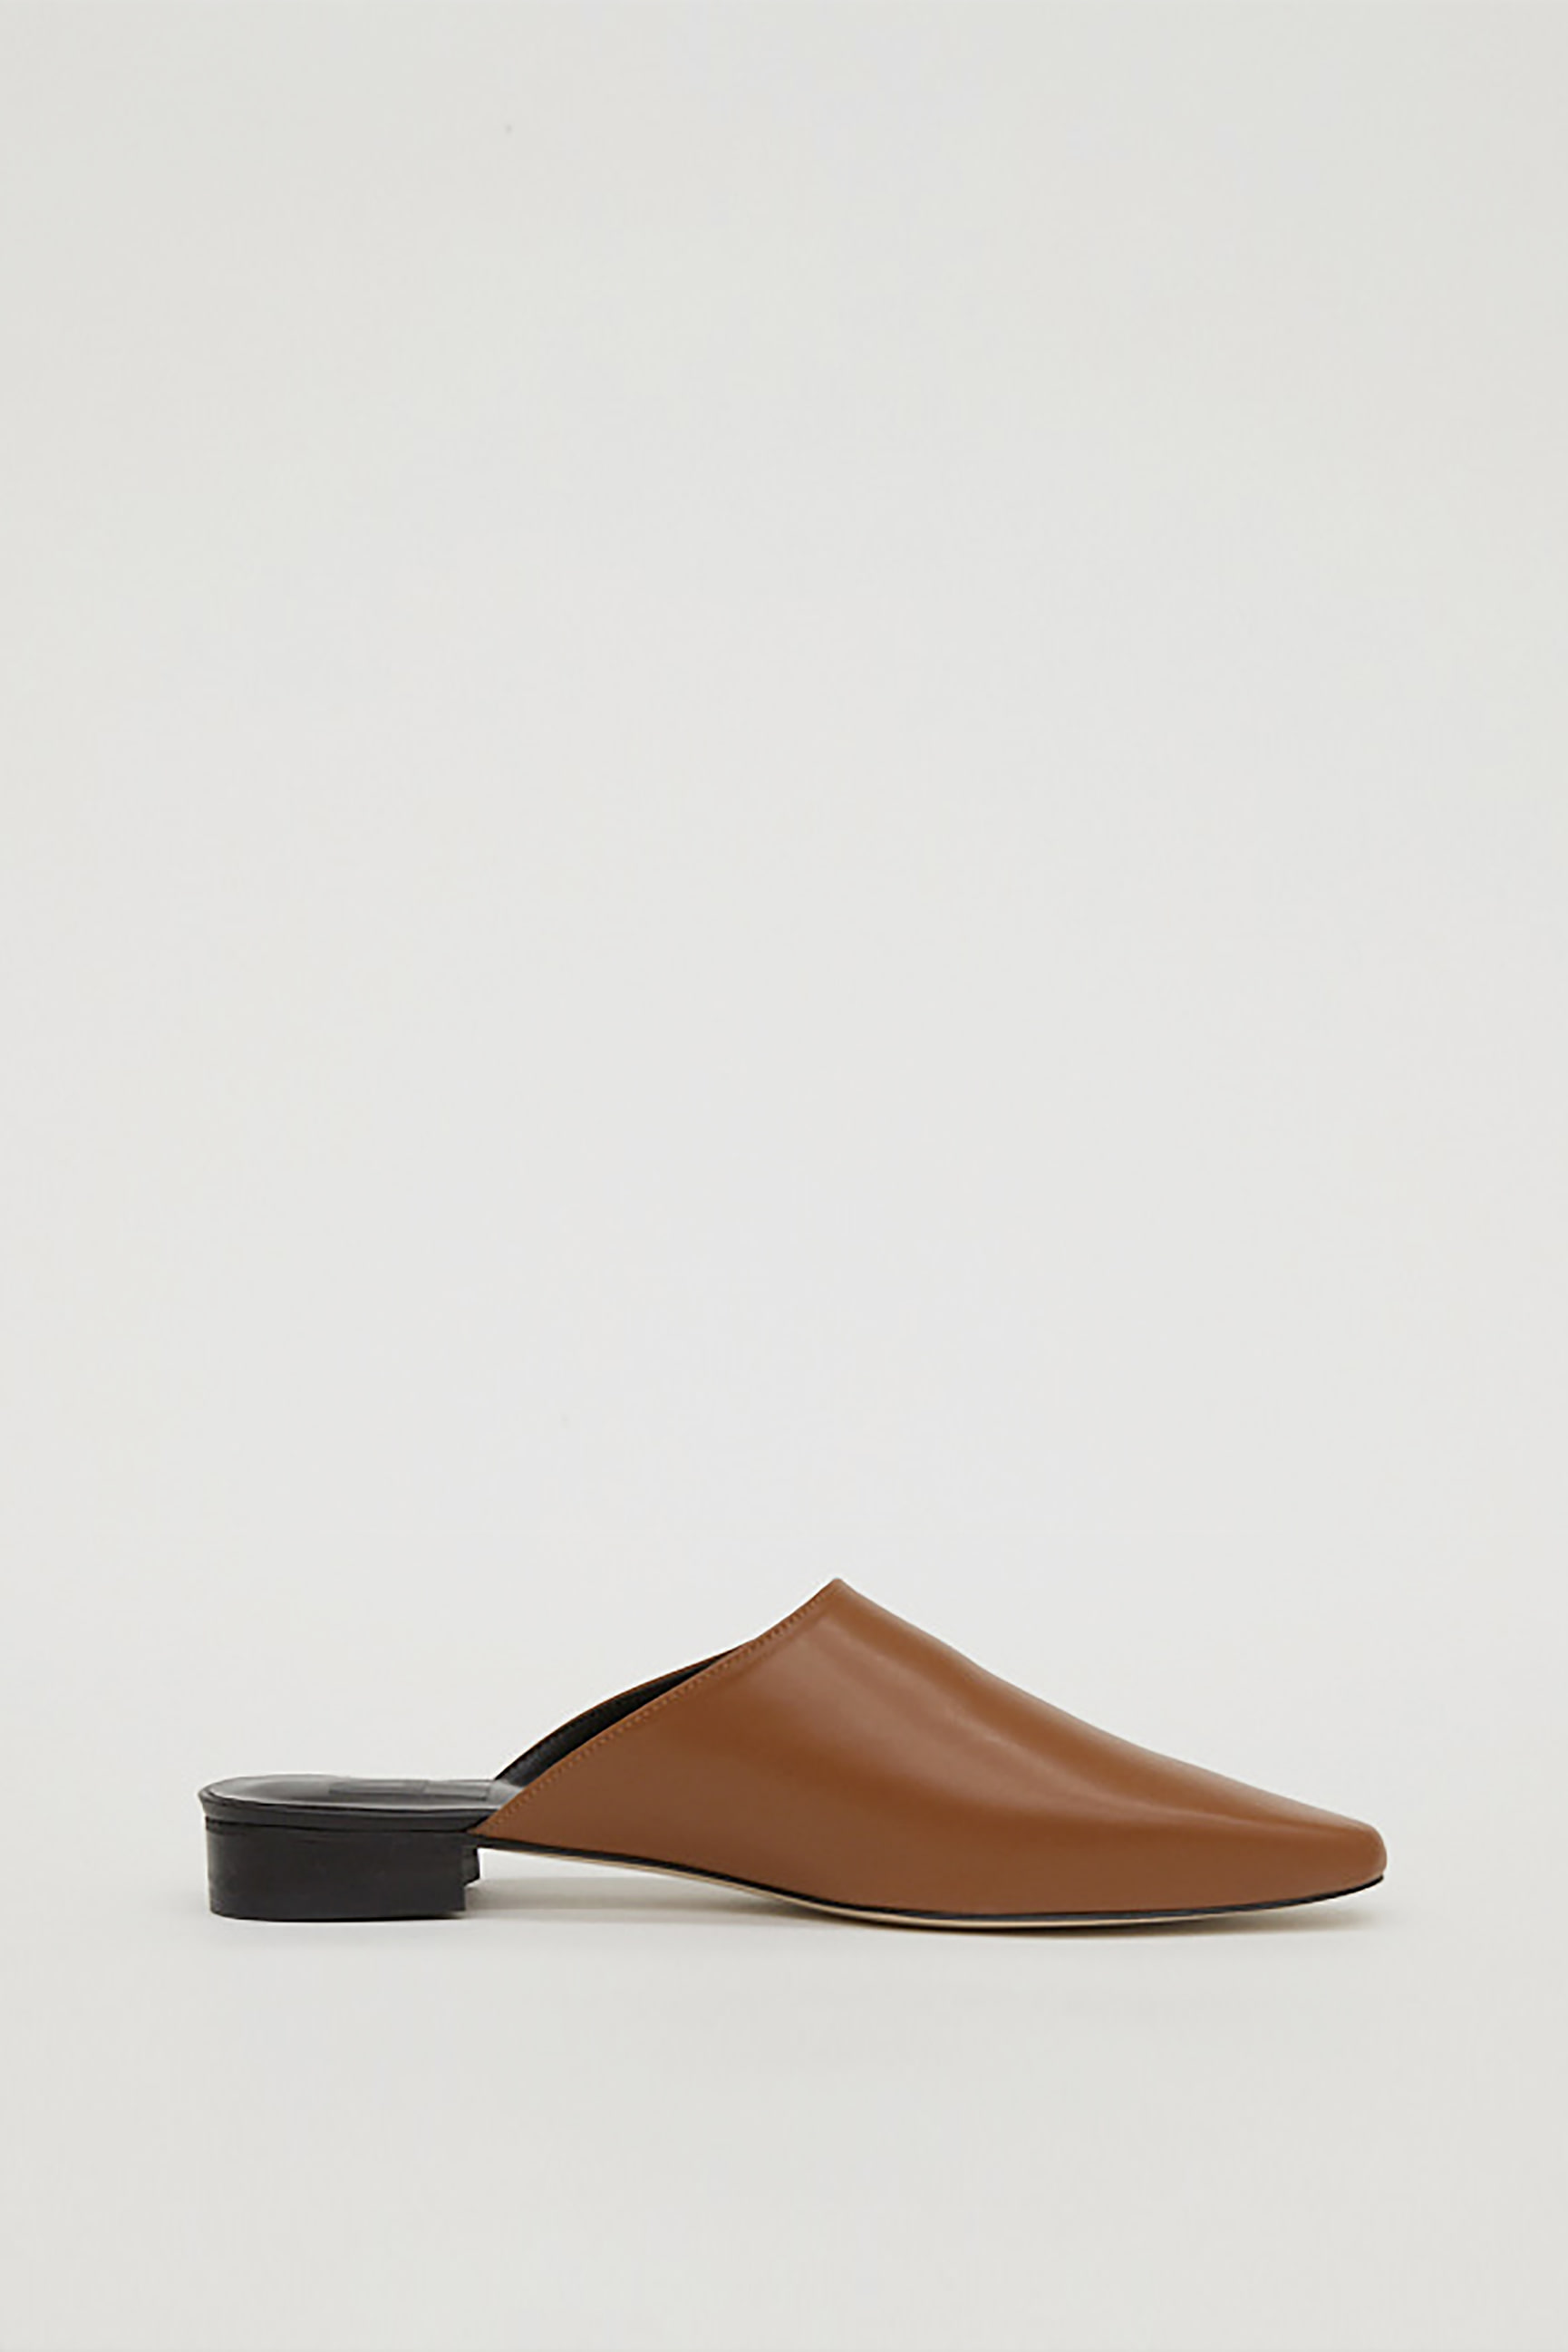 LEATHER MULE_CAMEL